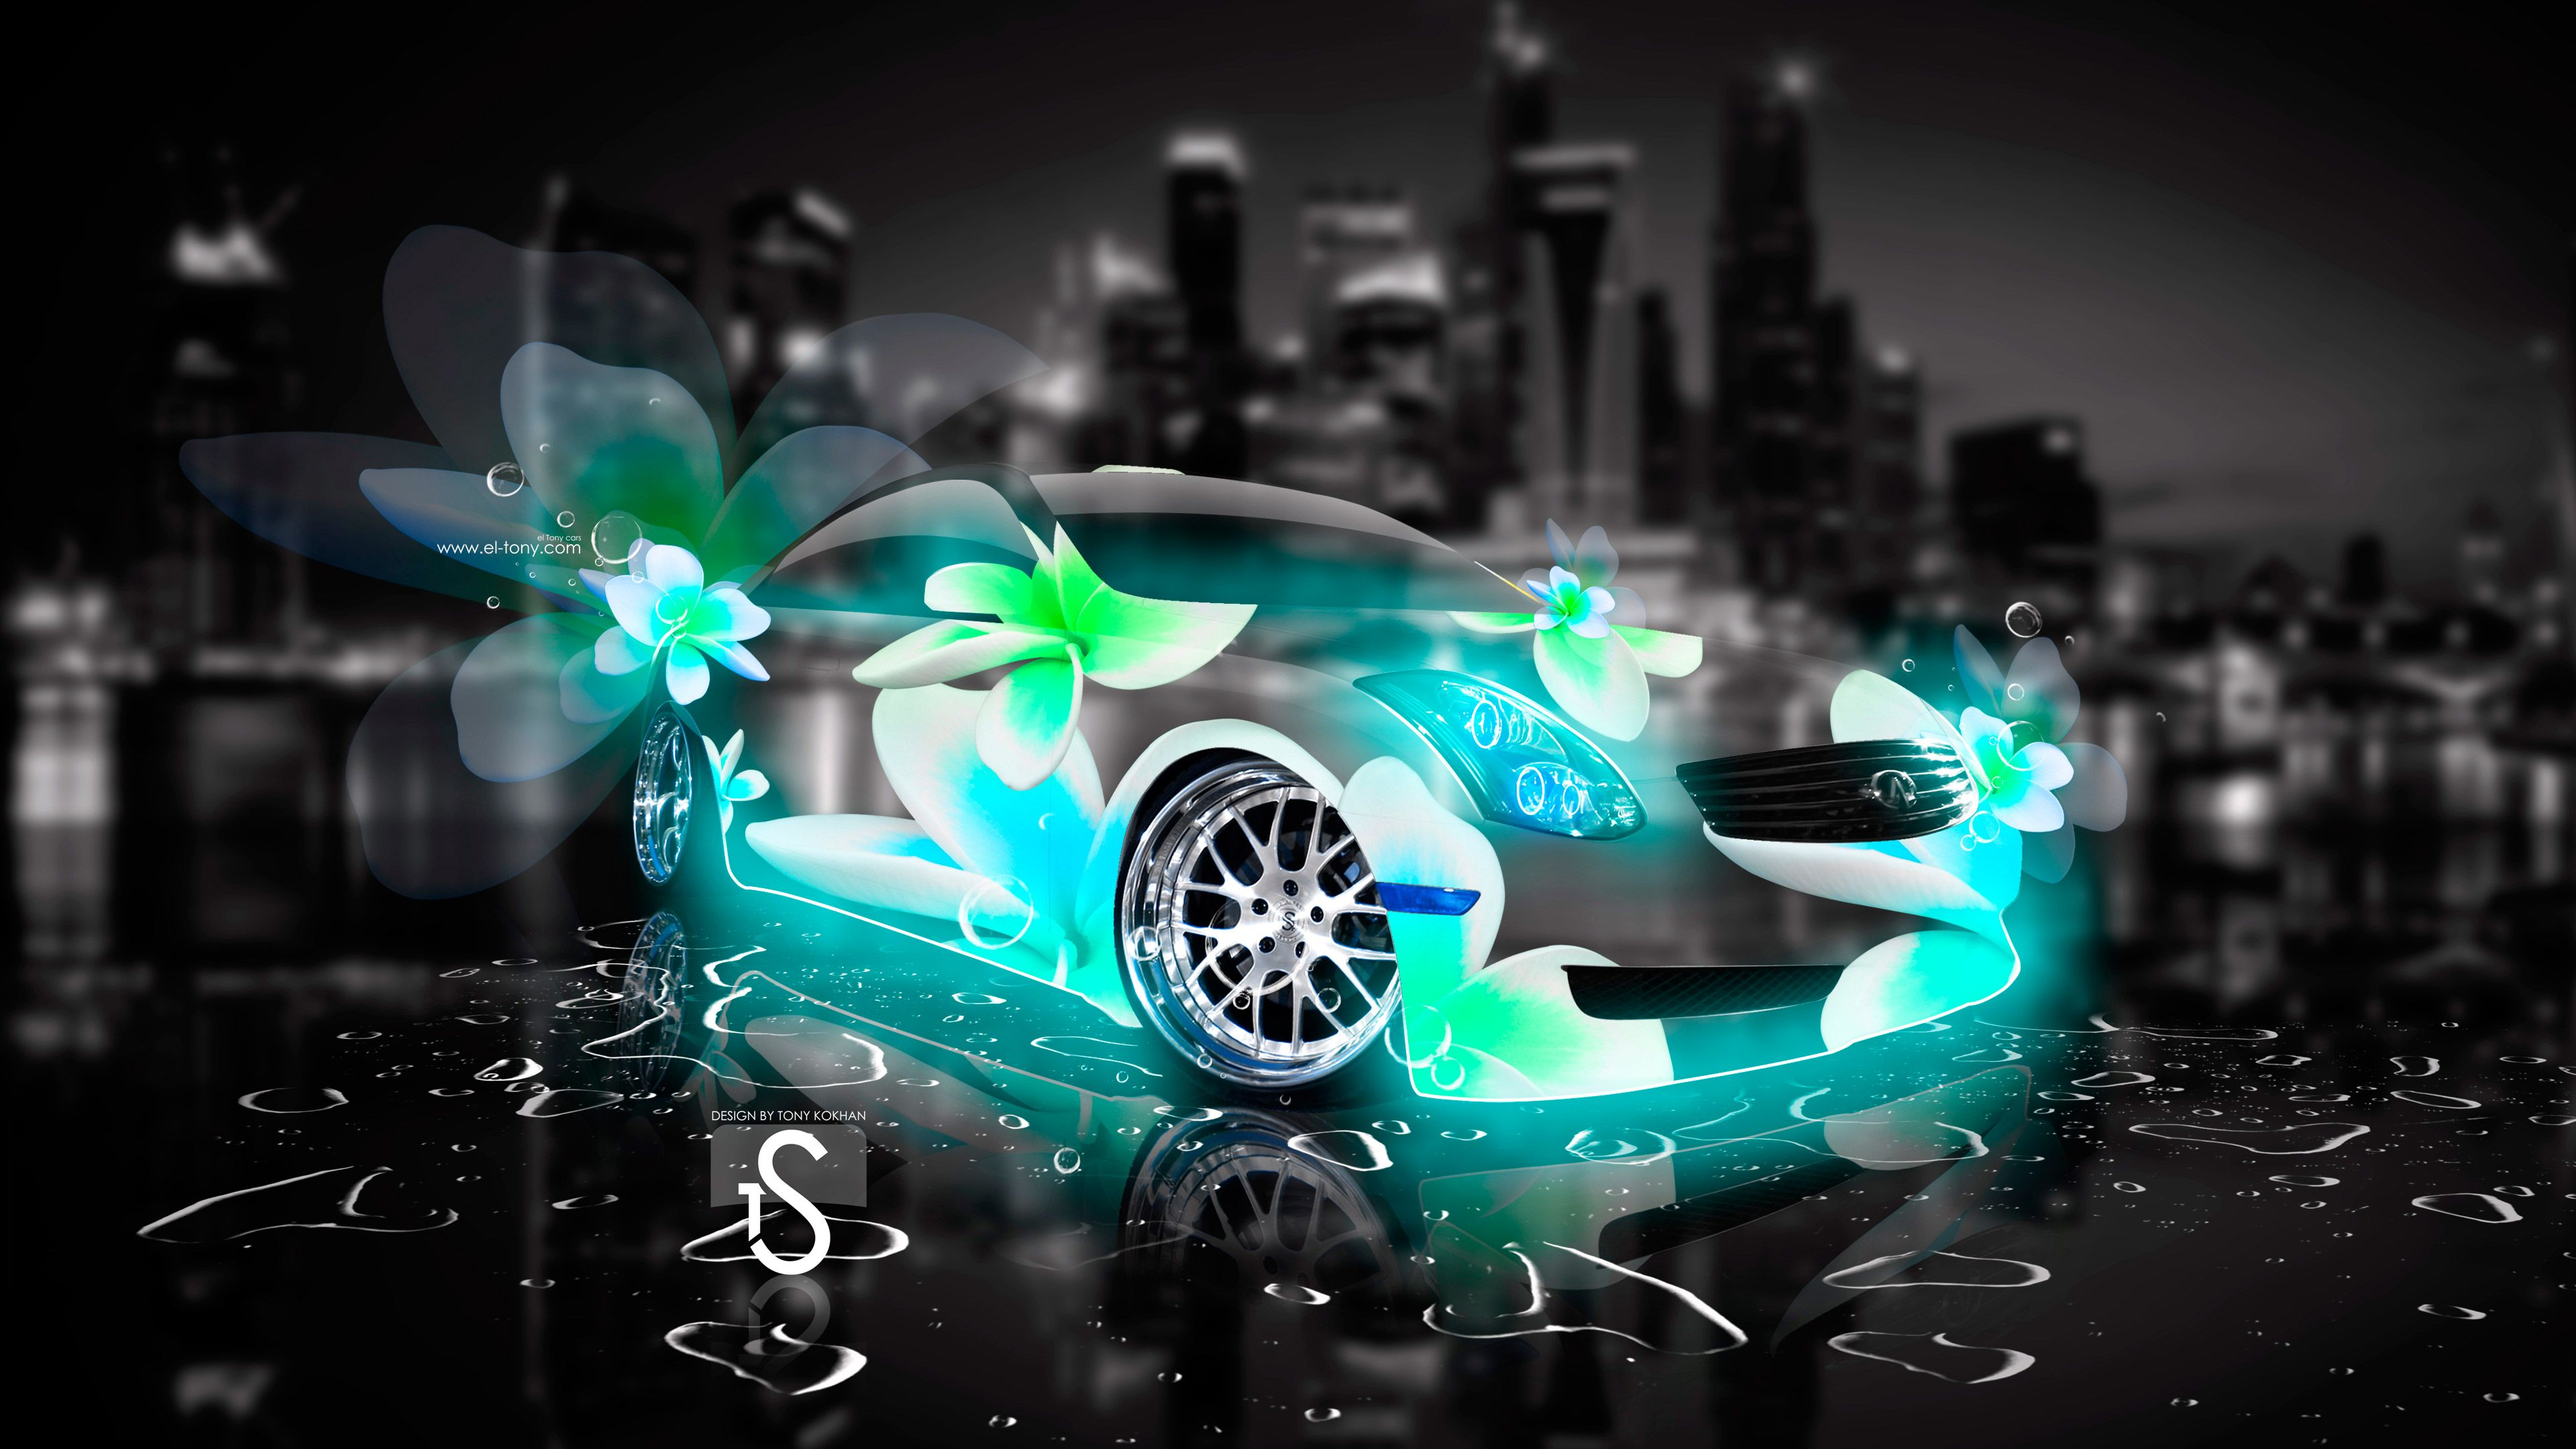 Exceptional Azure, Blue, Bubble, Bubbles, City, Crystal, Effects, El Tony Cars,  Flowers, G35, Green, Infiniti, Neon, Night, Super, TonyFlowers, TonyStyle,  Water, White, ...